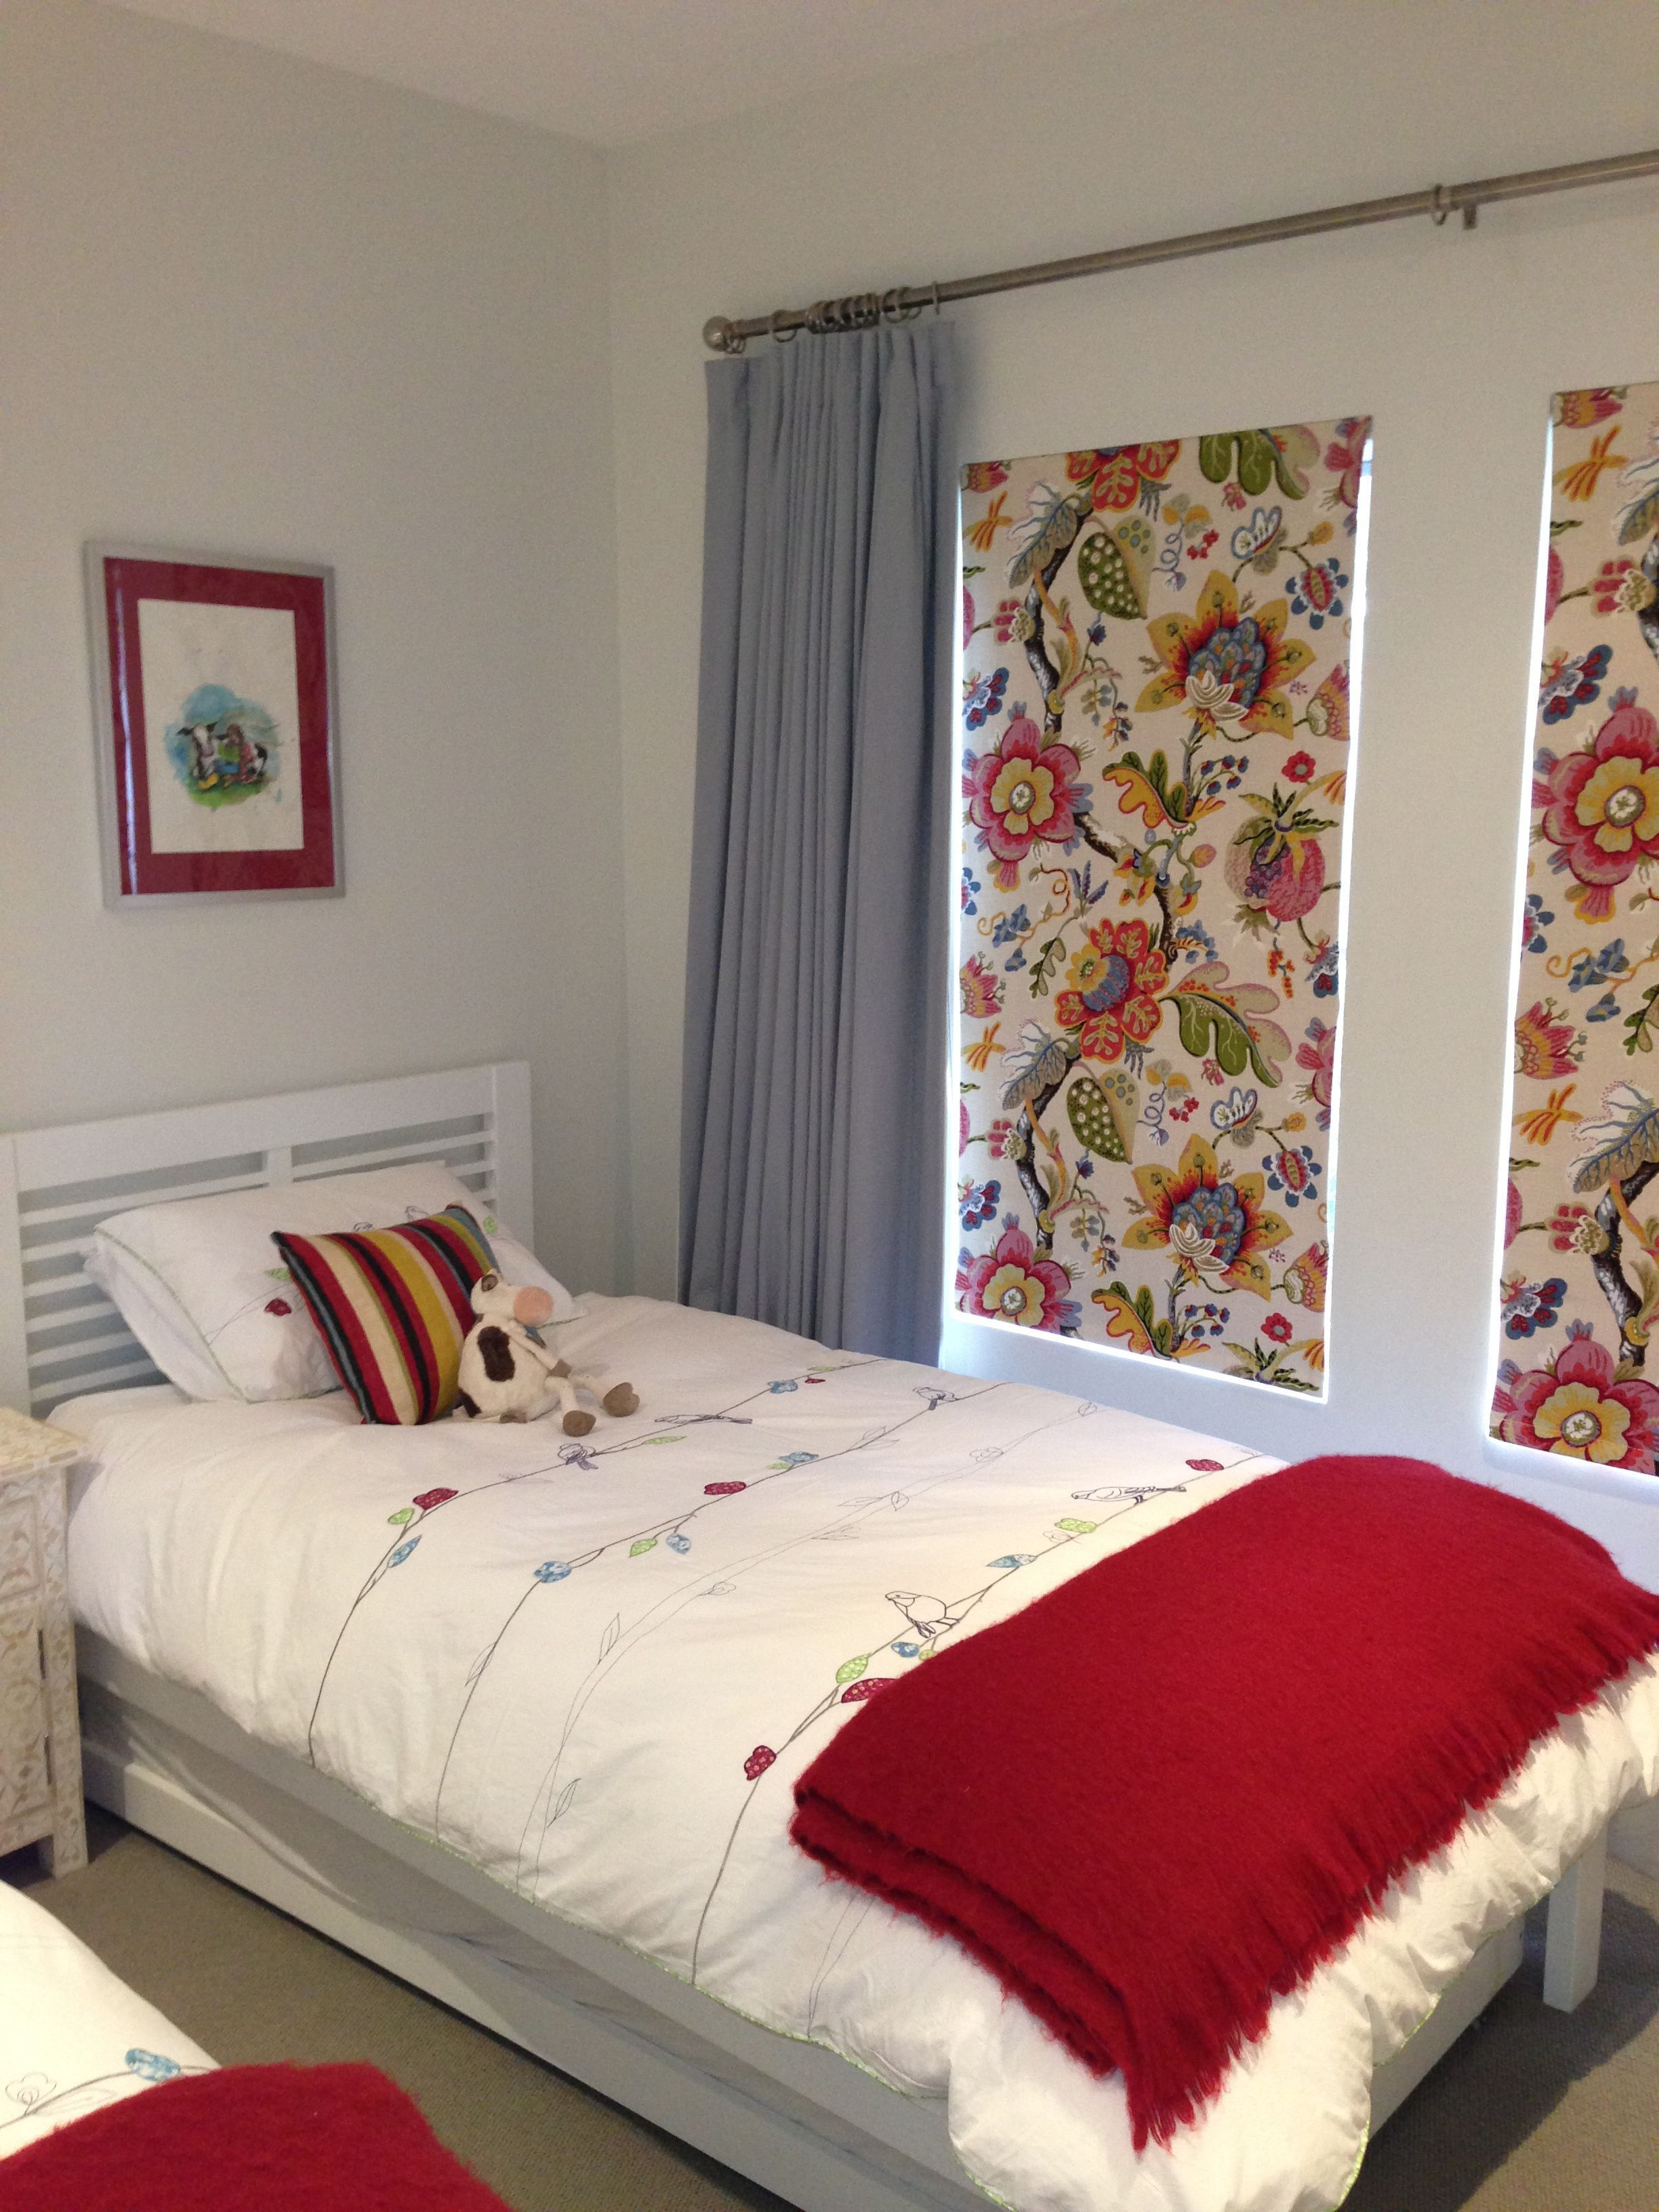 Bed head against window  roman blinds and curtains together with wooden bedhead all by